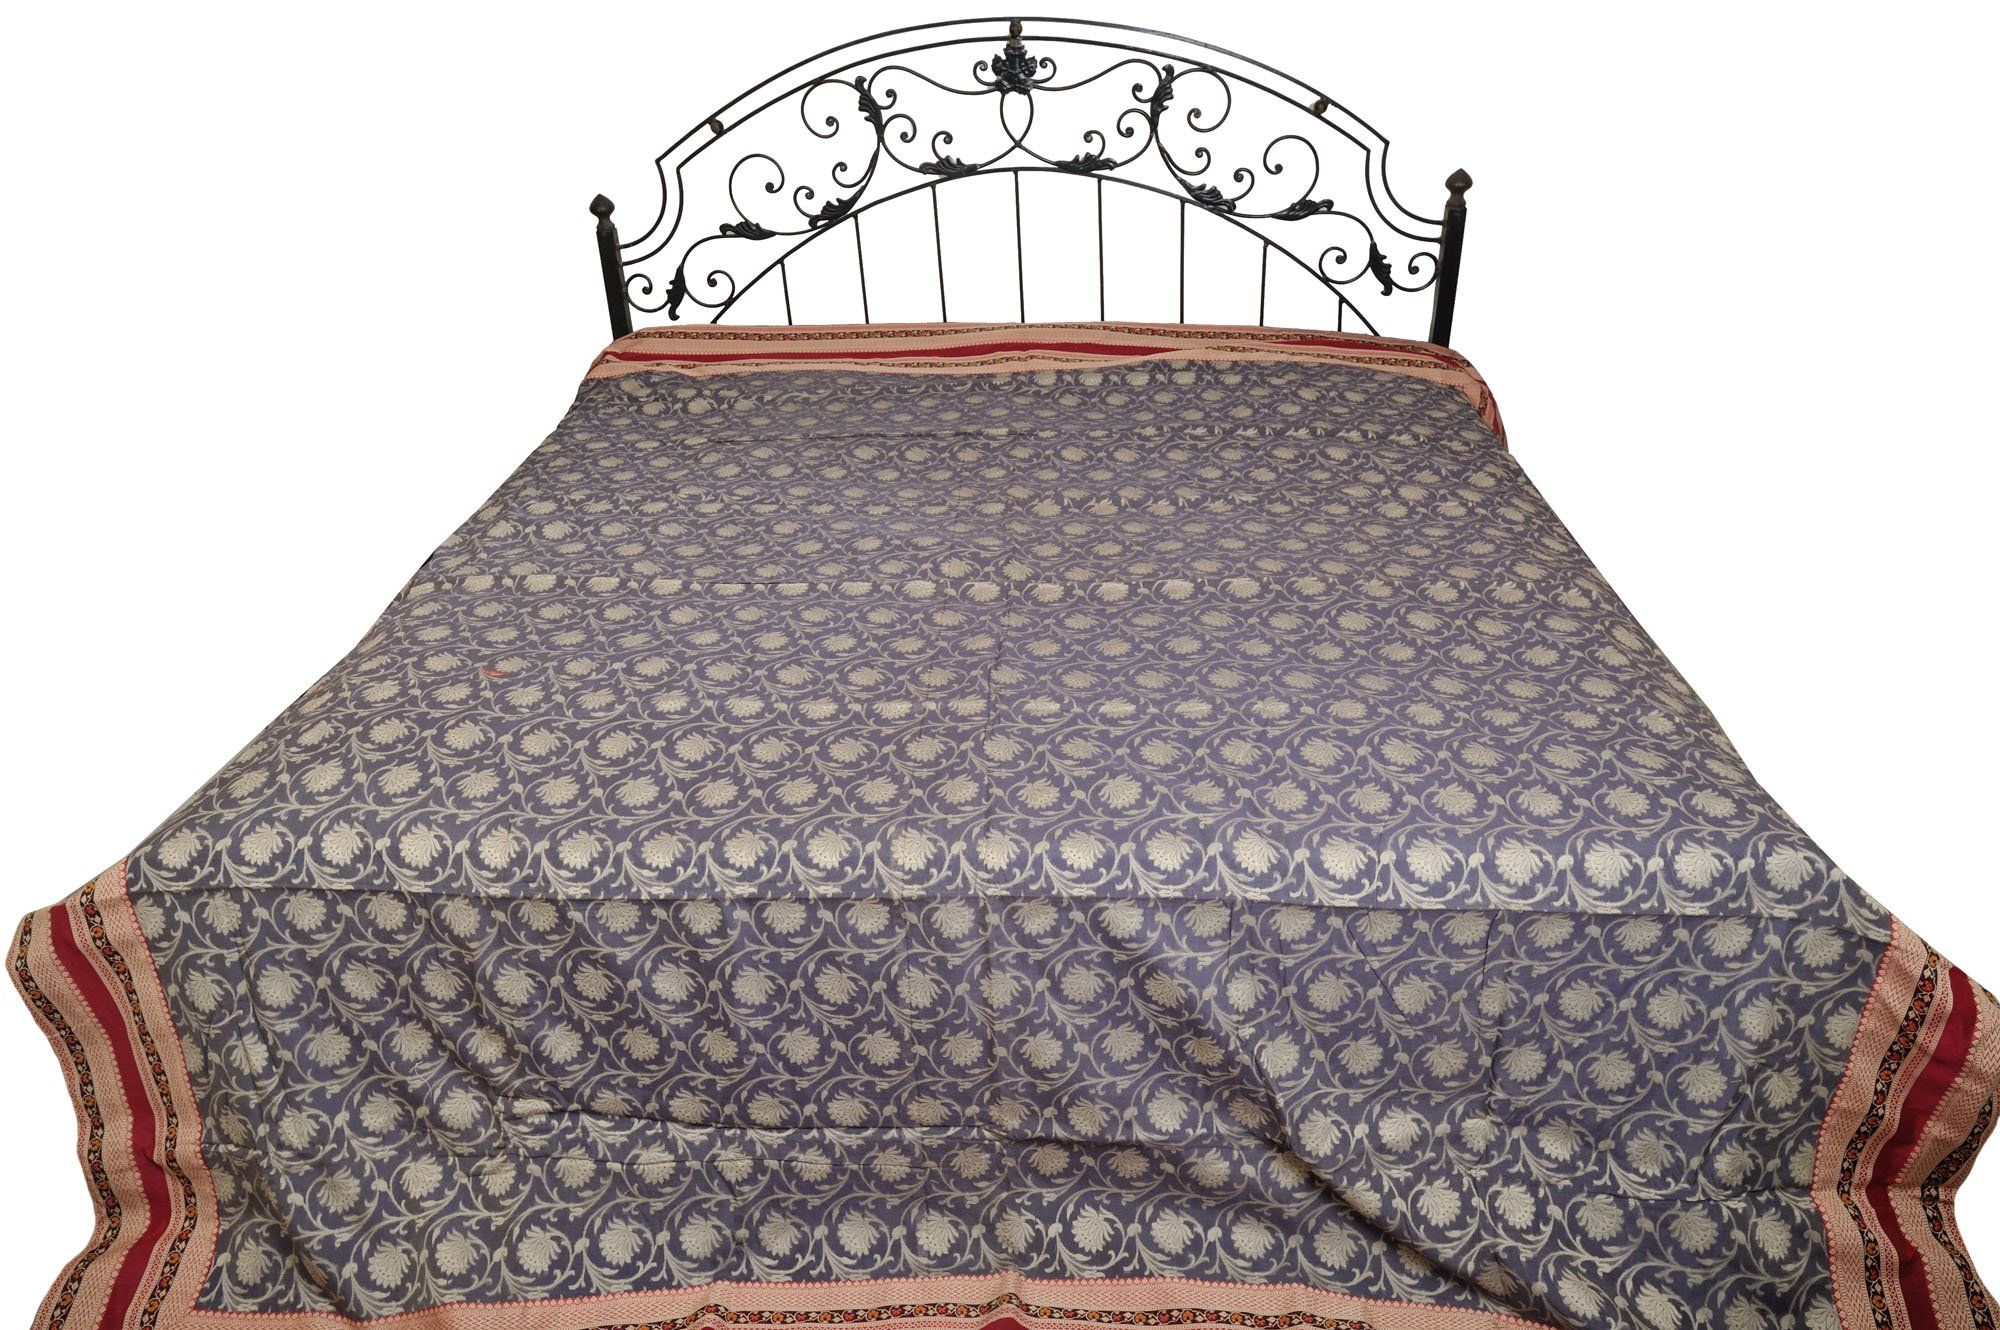 Excalibur-Gray Bedspread from Banaras with All-Over Woven Lotuses and Wide Patch Border - Kora Cotto by Exotic India (Image #1)